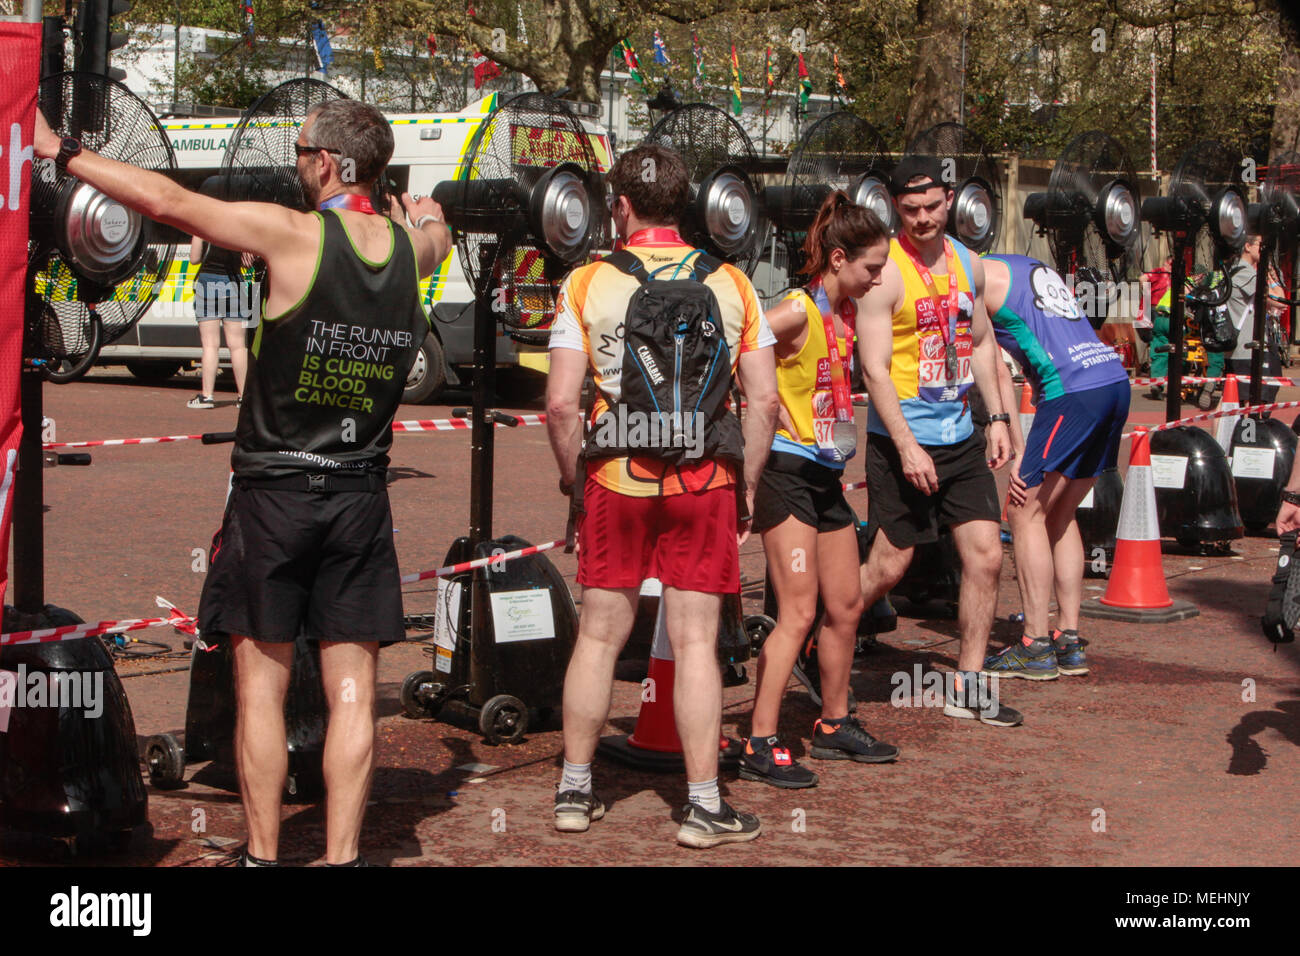 London UK 22 April 2018 The London Marathon was run in extreme heat and many people needed assistance at the finish ,while others cool down in big fans positioned along the mall @Paul Quezada-Neiman/Alamy Live News Stock Photo